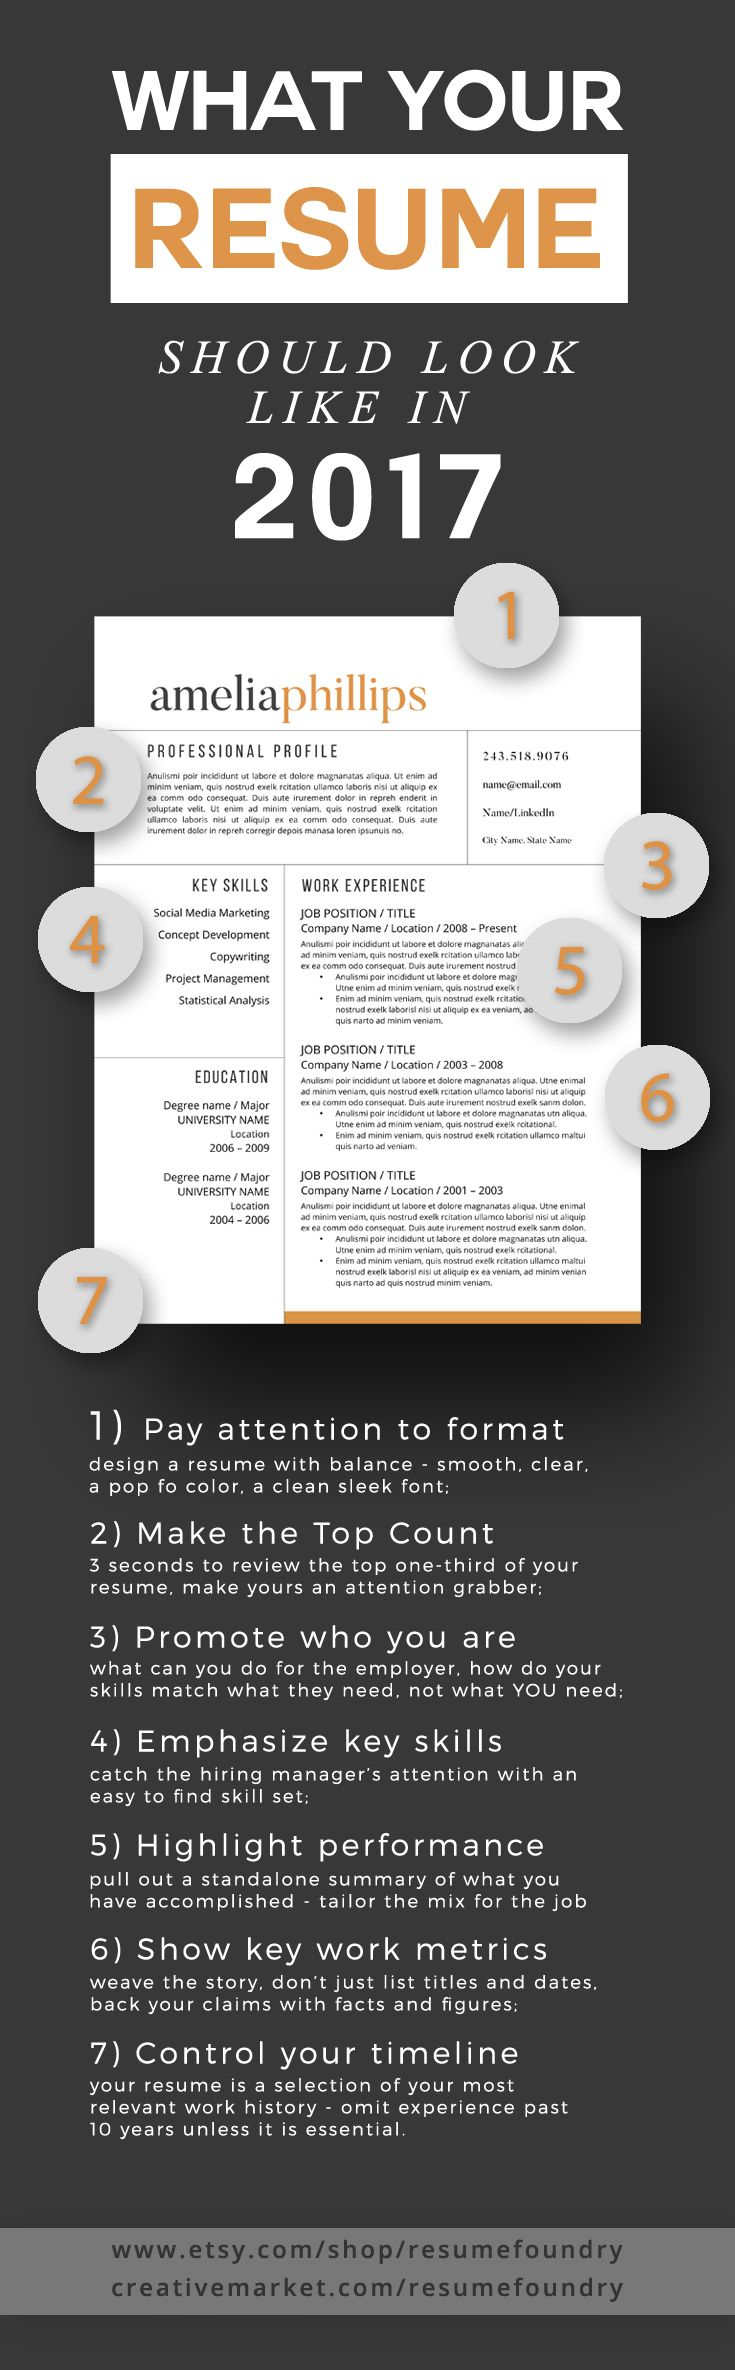 A Job Resume Stunning Best 107 Job Search Images On Pinterest  Resume Advertising And .